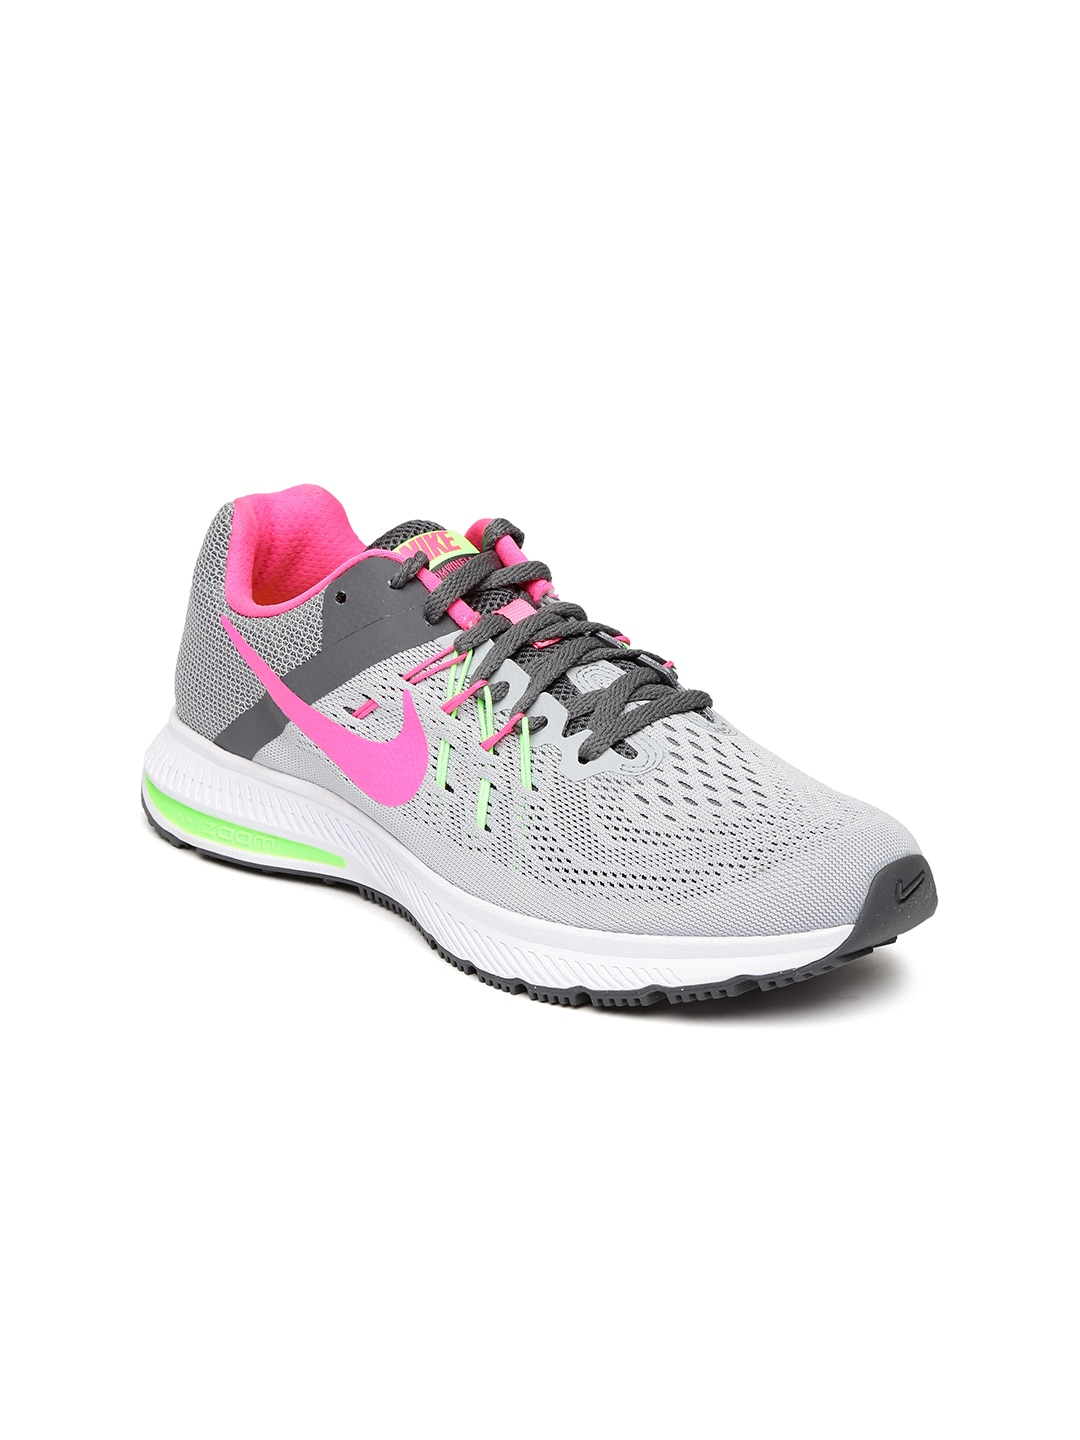 Nike 807279-007 Women Grey Zoom Winflo 2 Running Shoes- Price in India